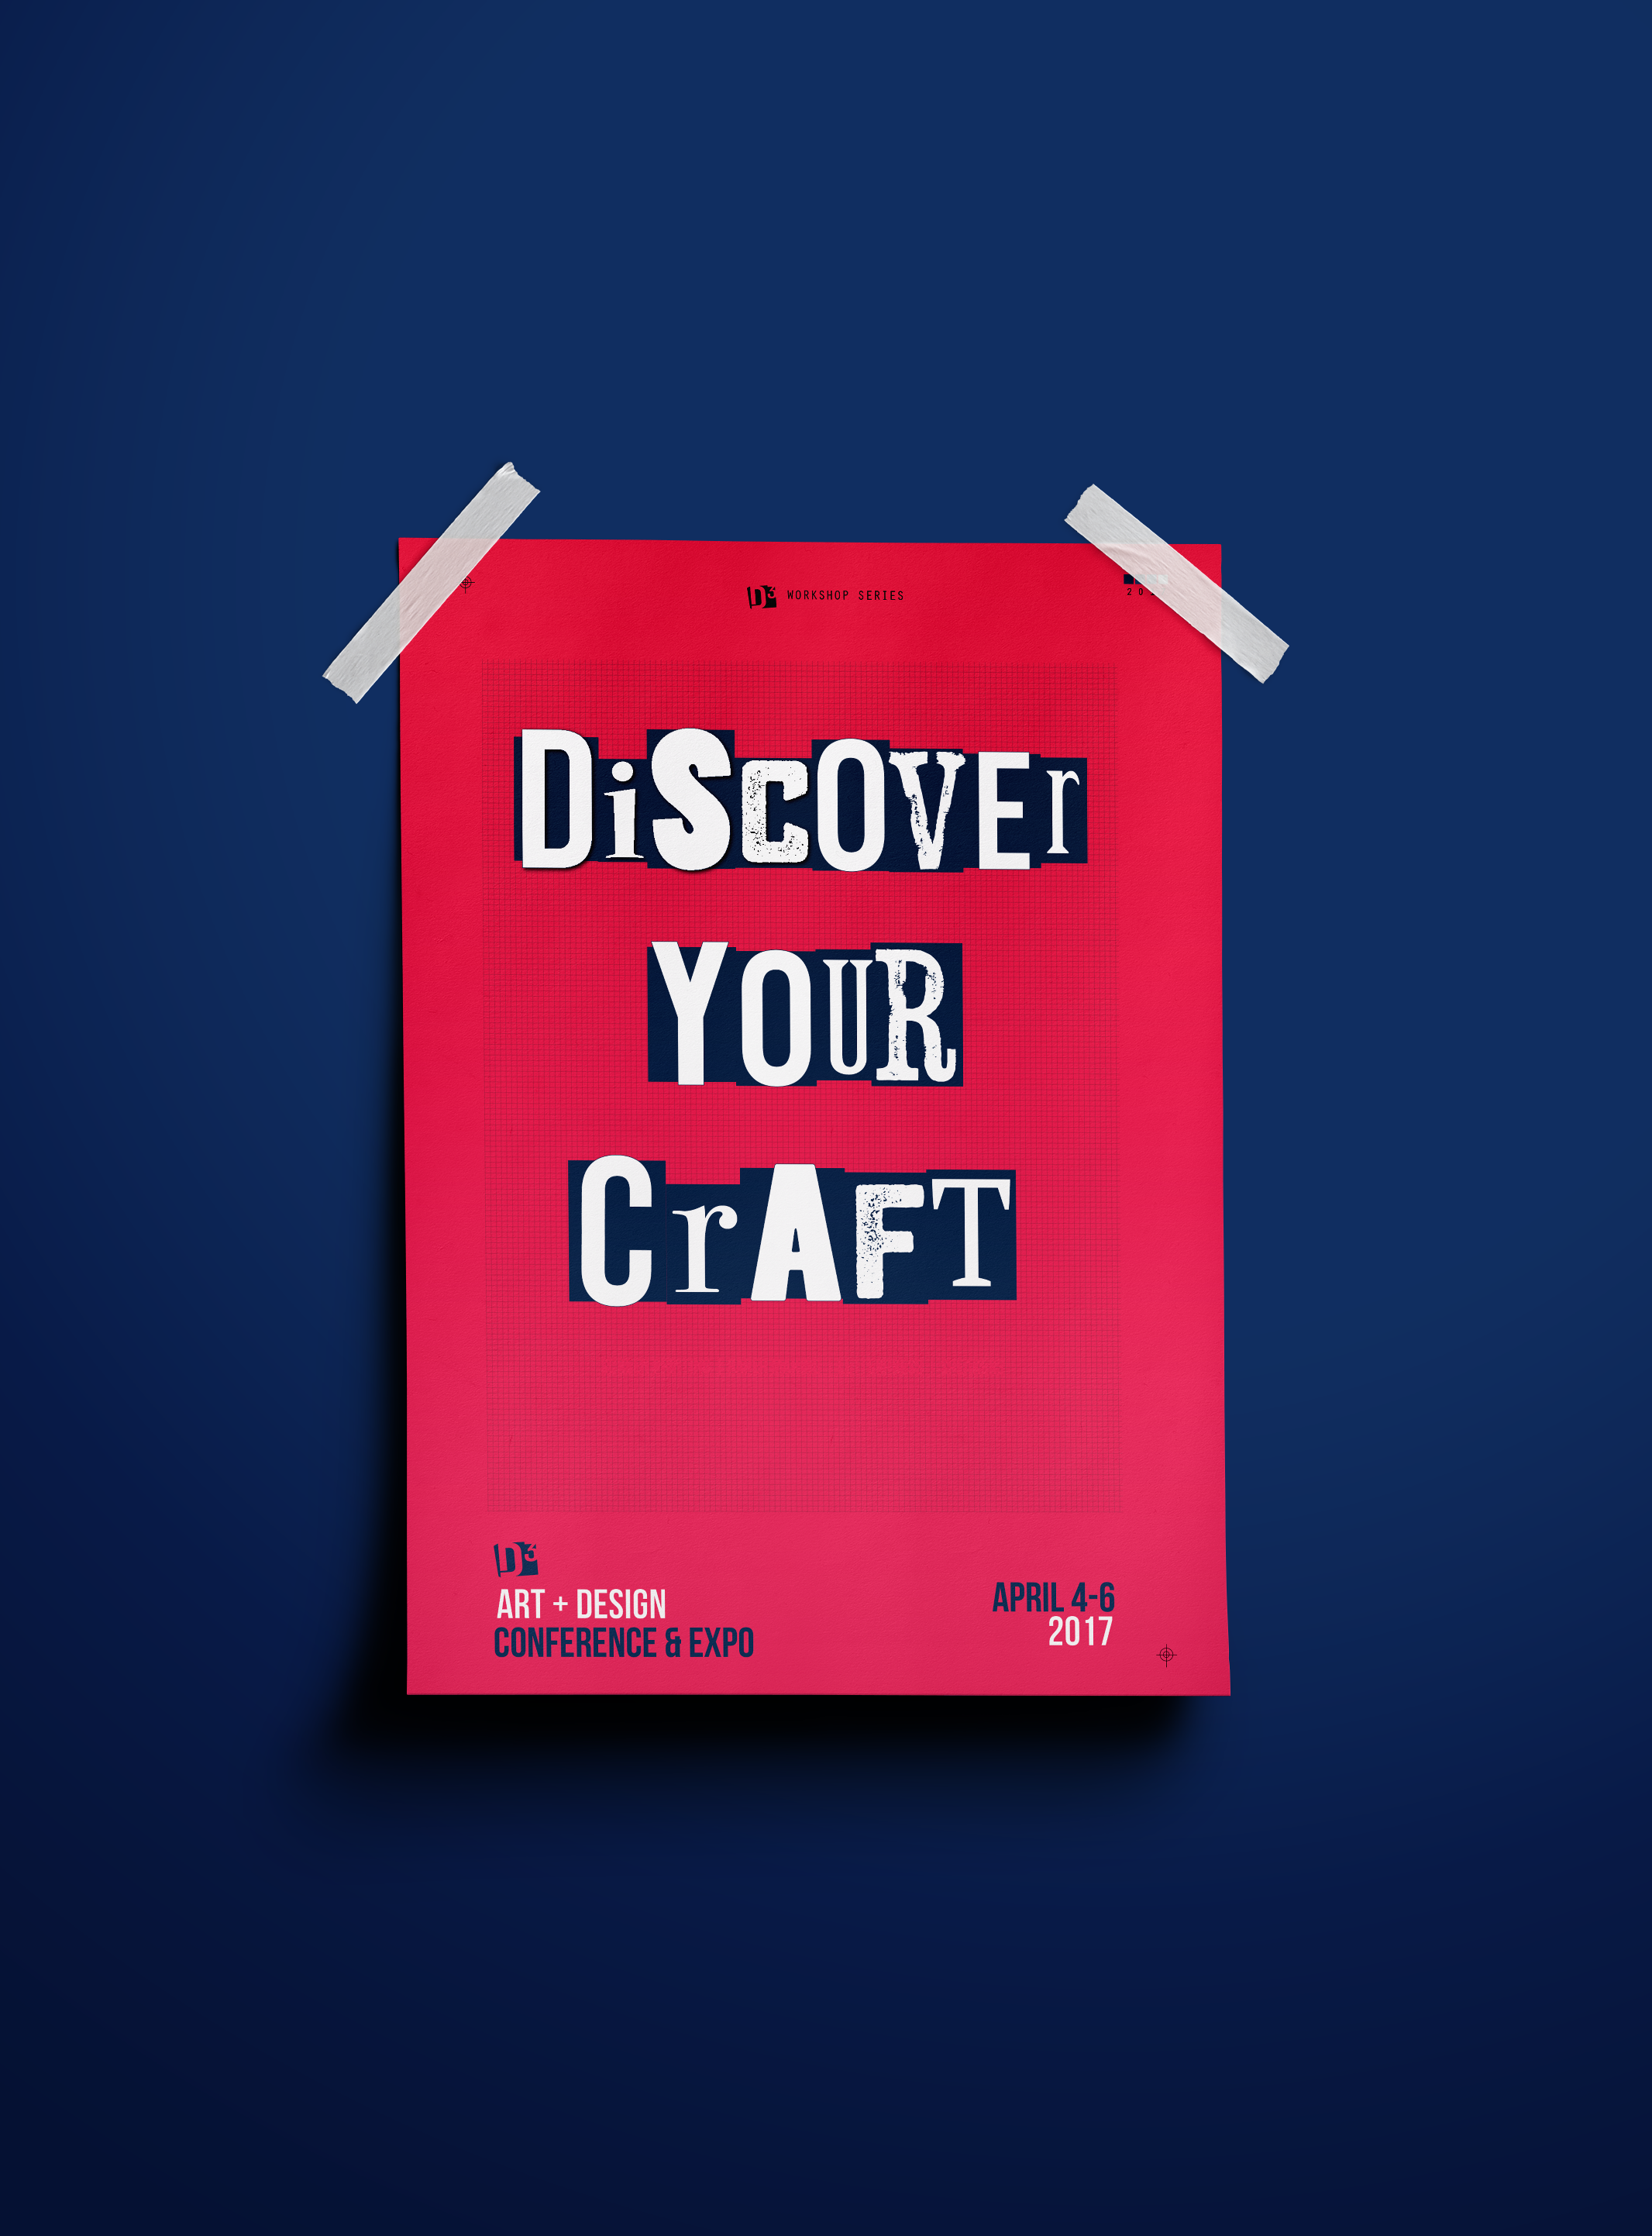 Discover Your Craft Poster Design for D3 Art + Design Conference at Miami-Dade North Campus, 1/4